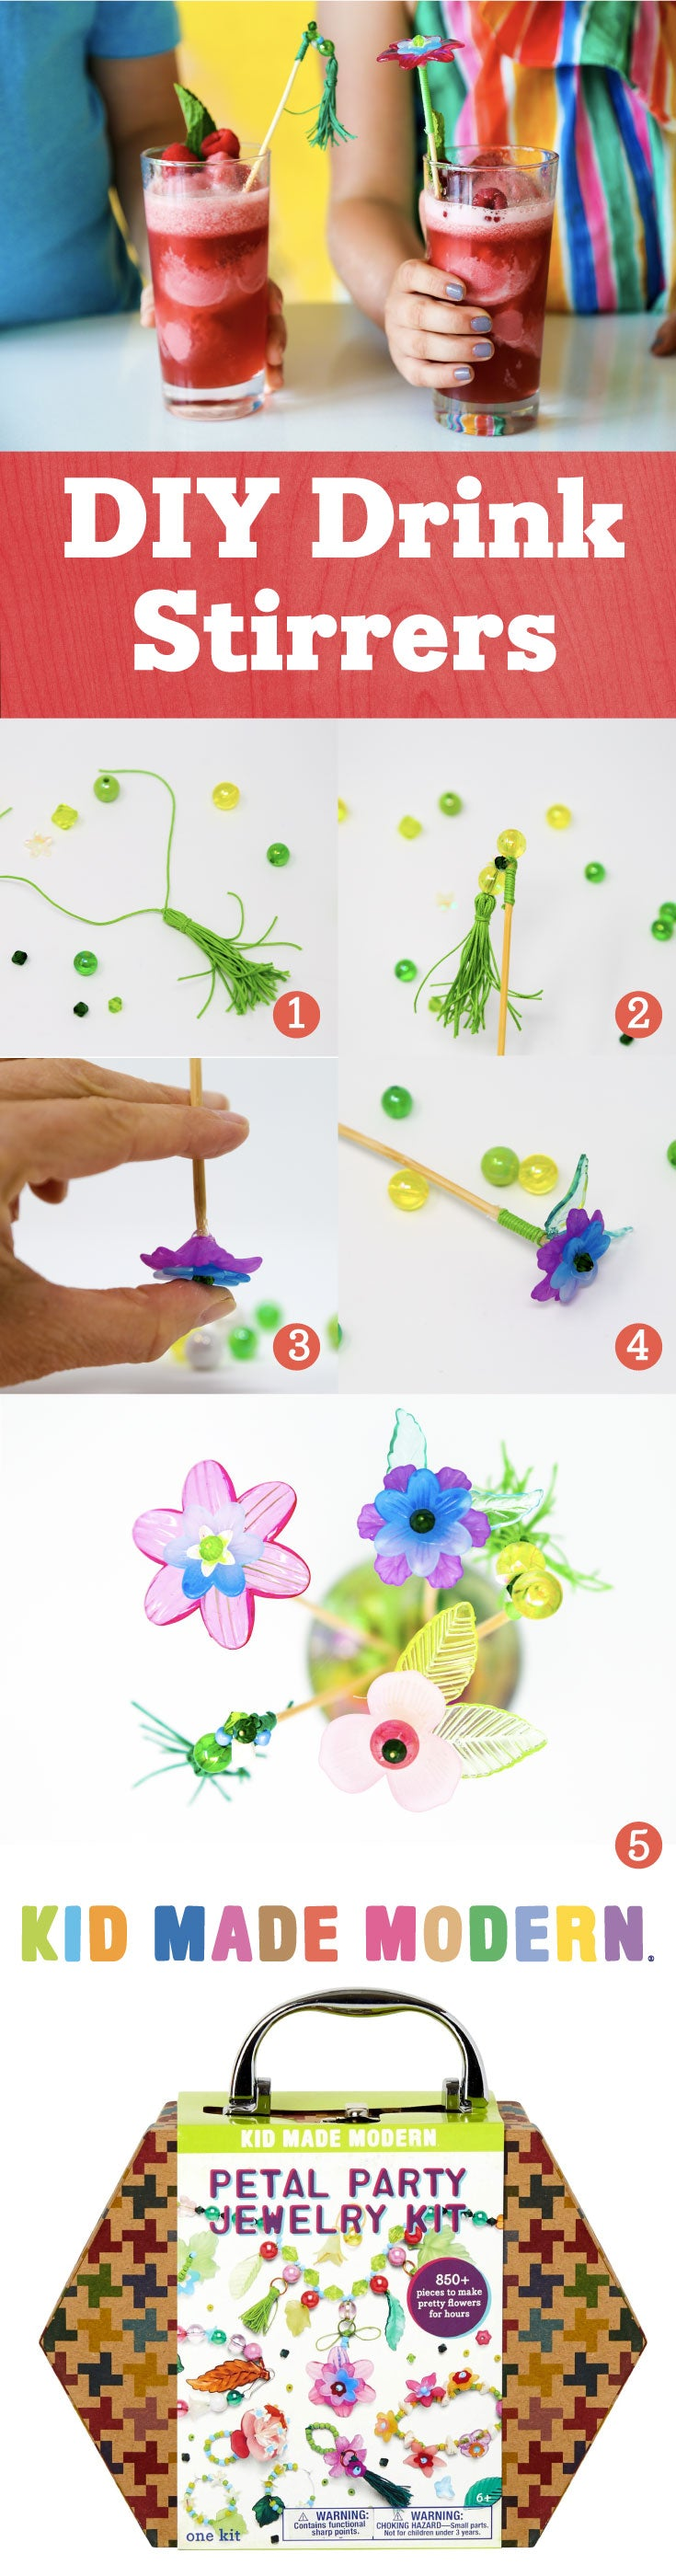 DIY Drink Stirrers Pinterest